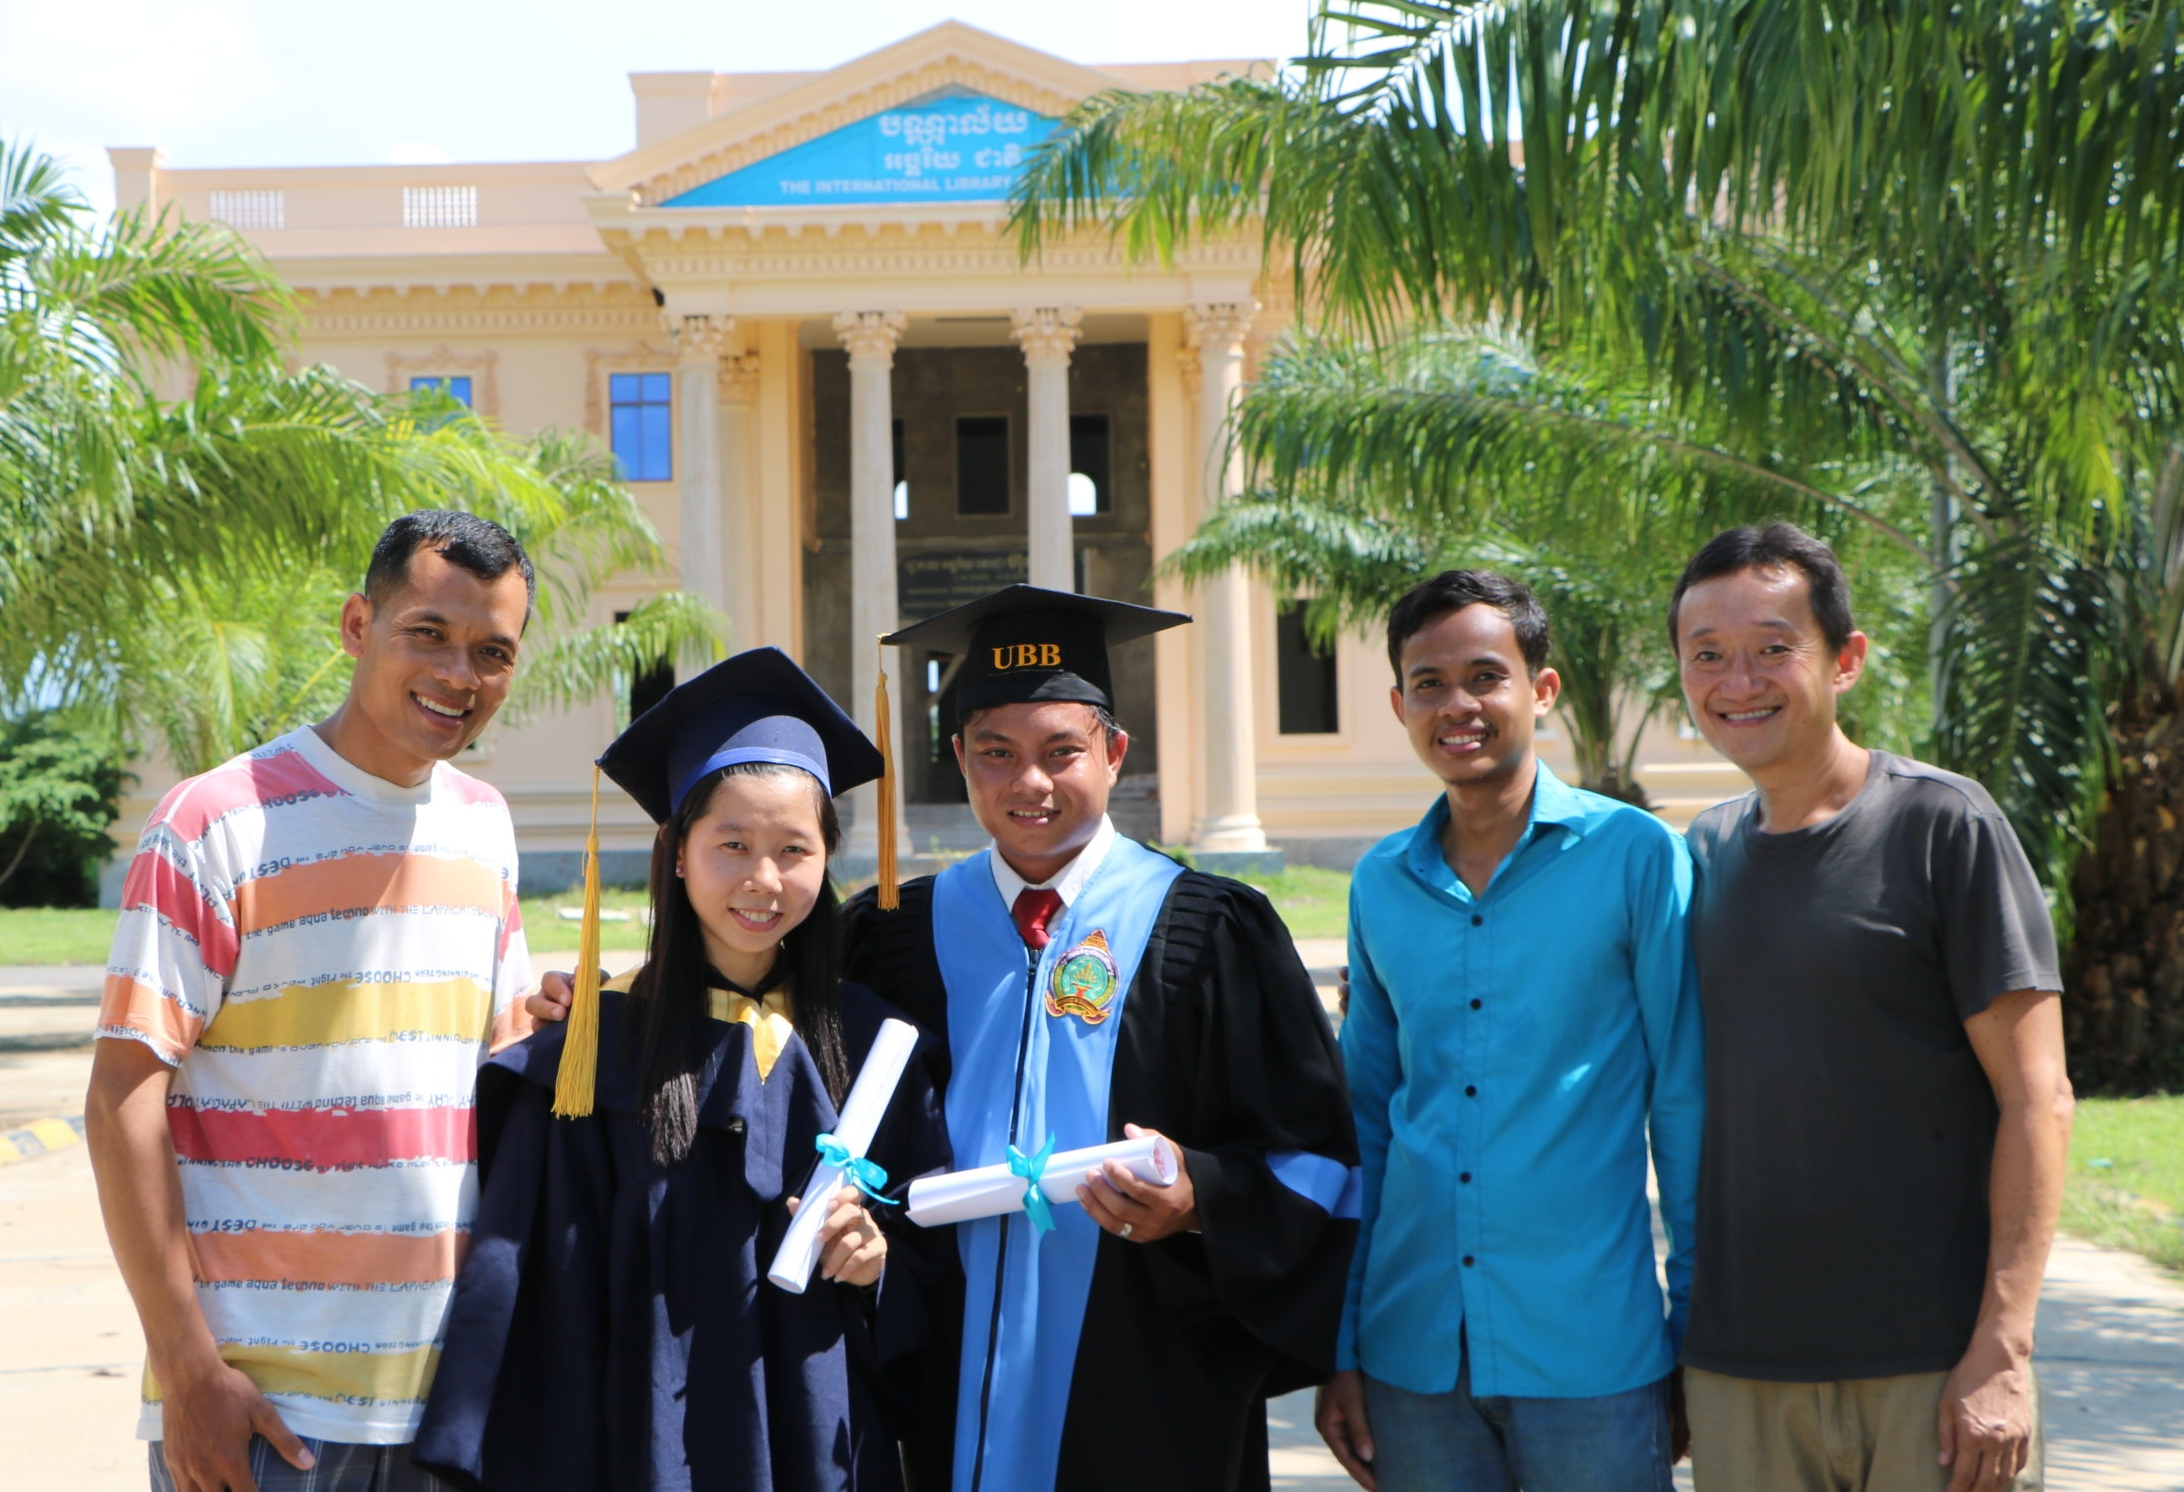 Local teachers Noeng, Naihuoy, Samath, and Samnieng with Joji Tatsugi celebrating the graduation of two teachers from University of Battambang, 2016.